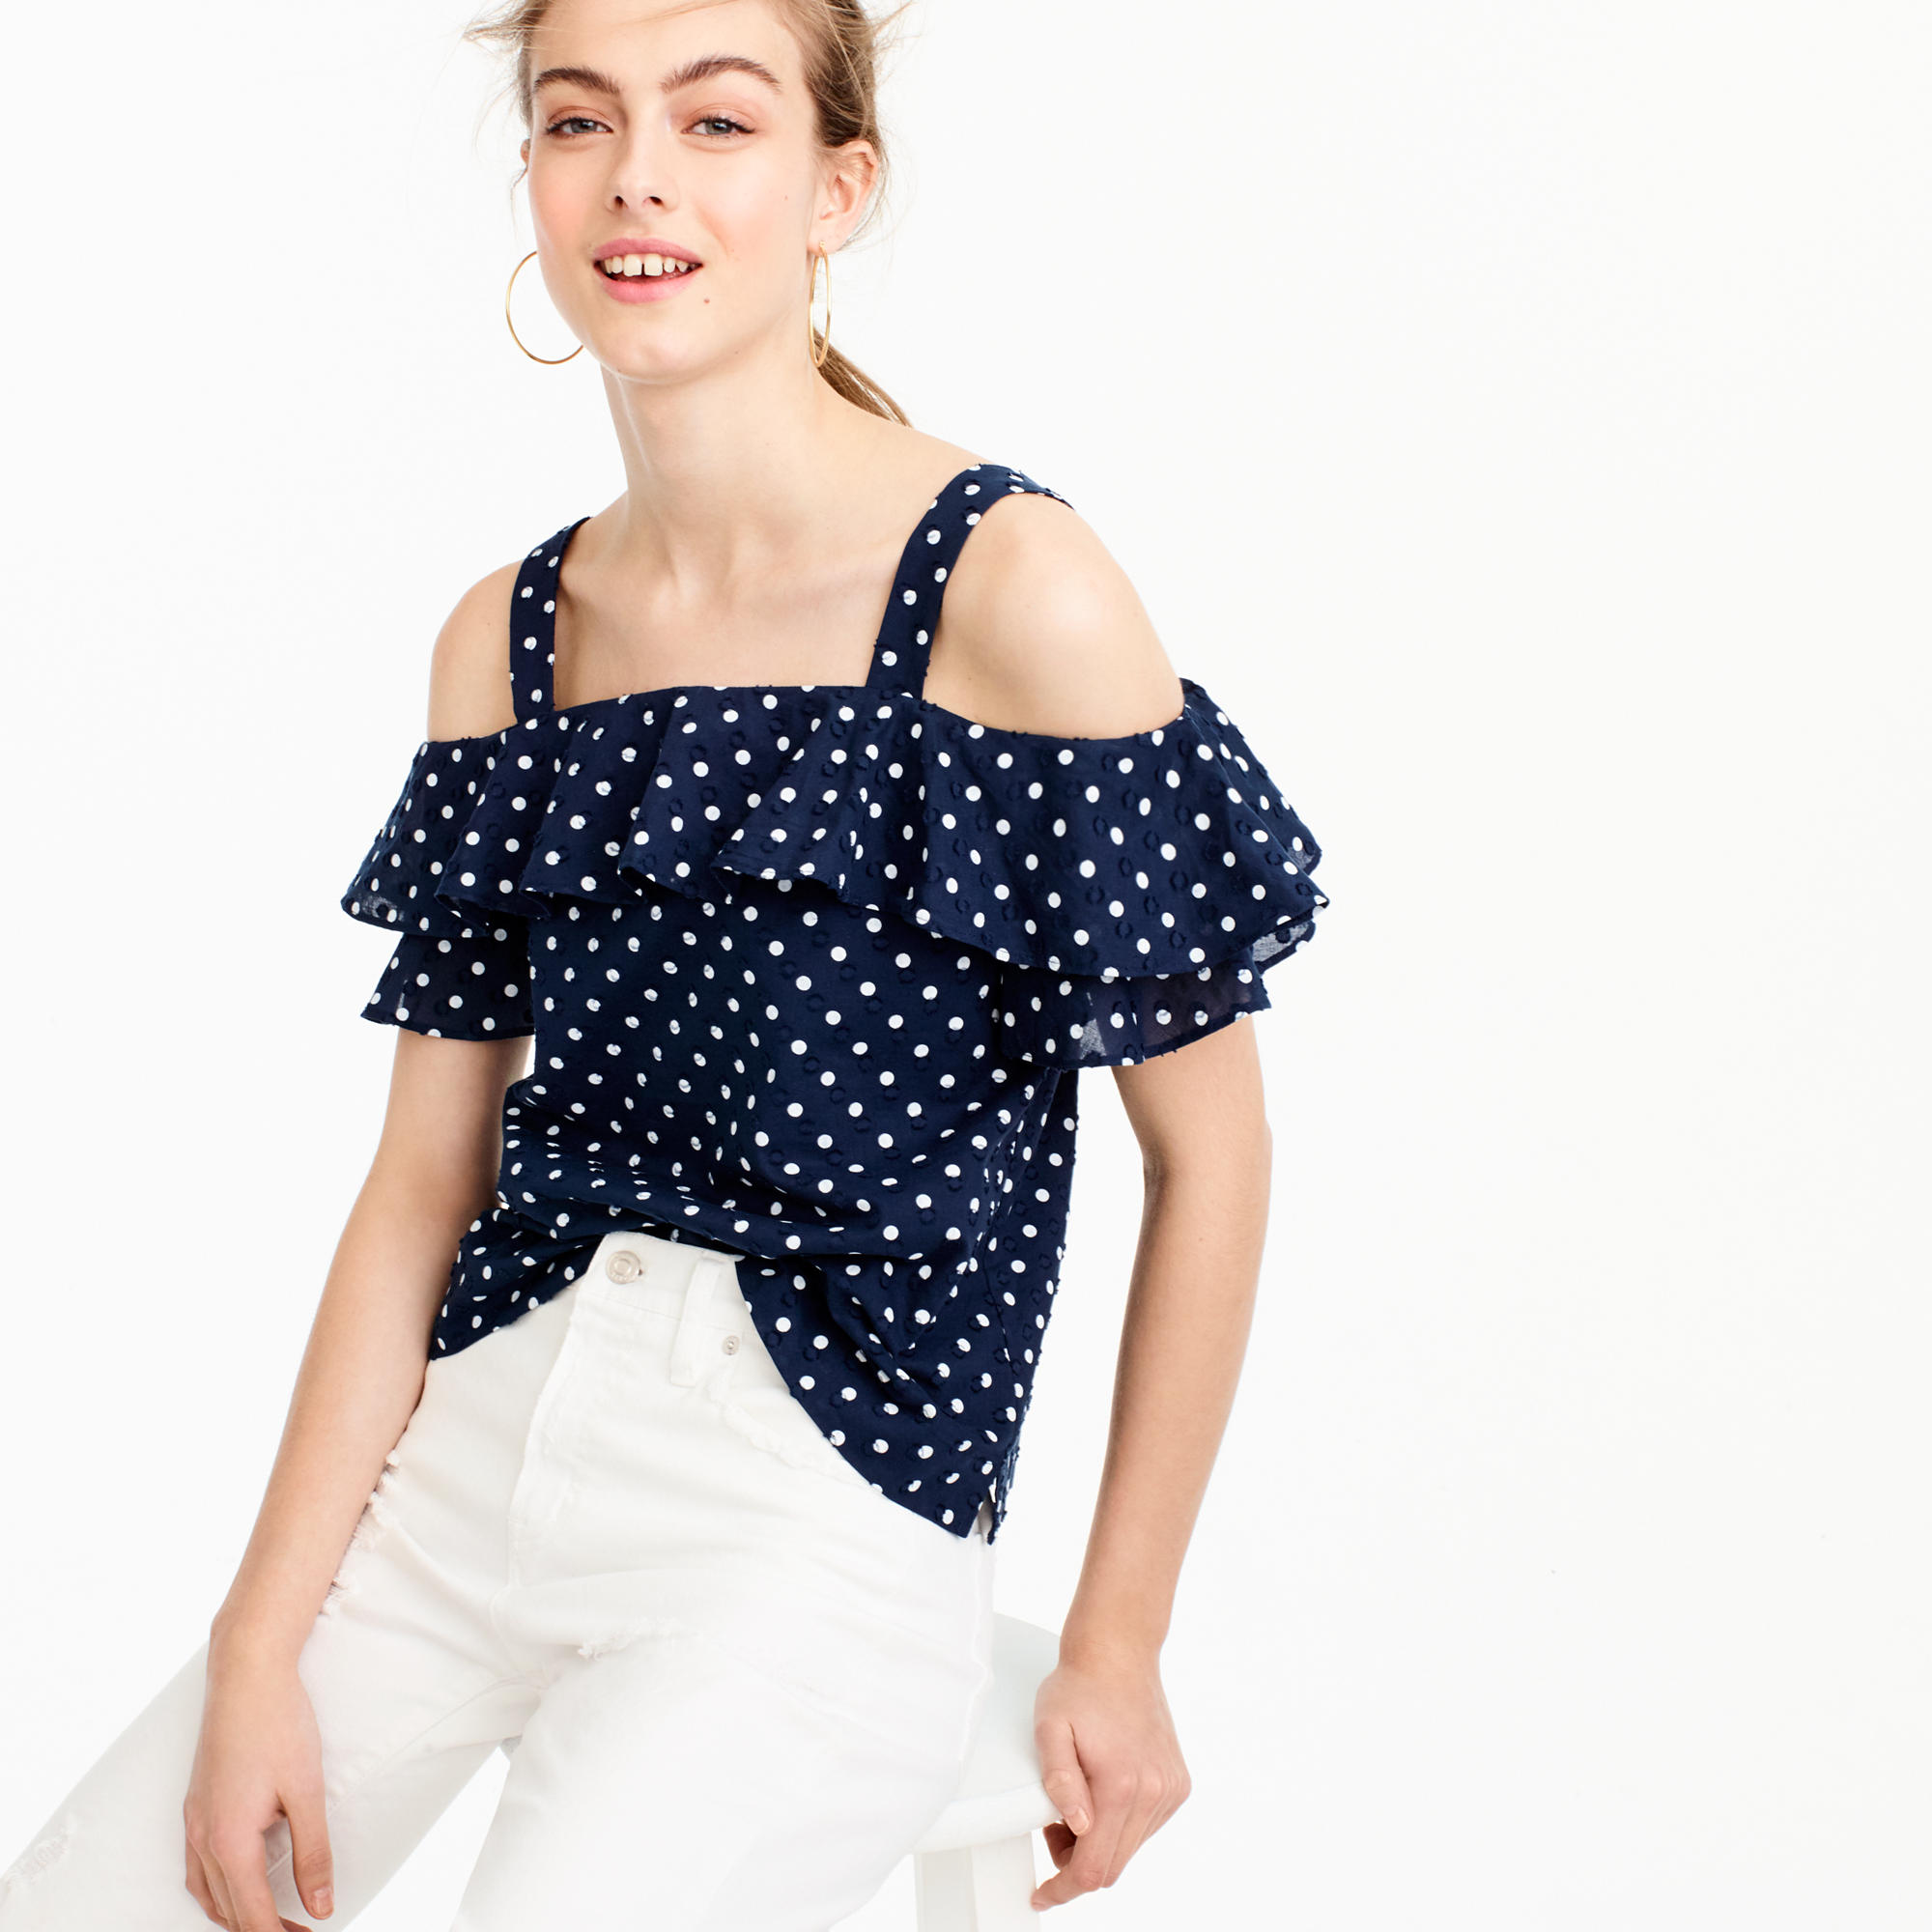 美国代购 j*crew 波点露肩上衣 Polka-dot cold-shoulder top